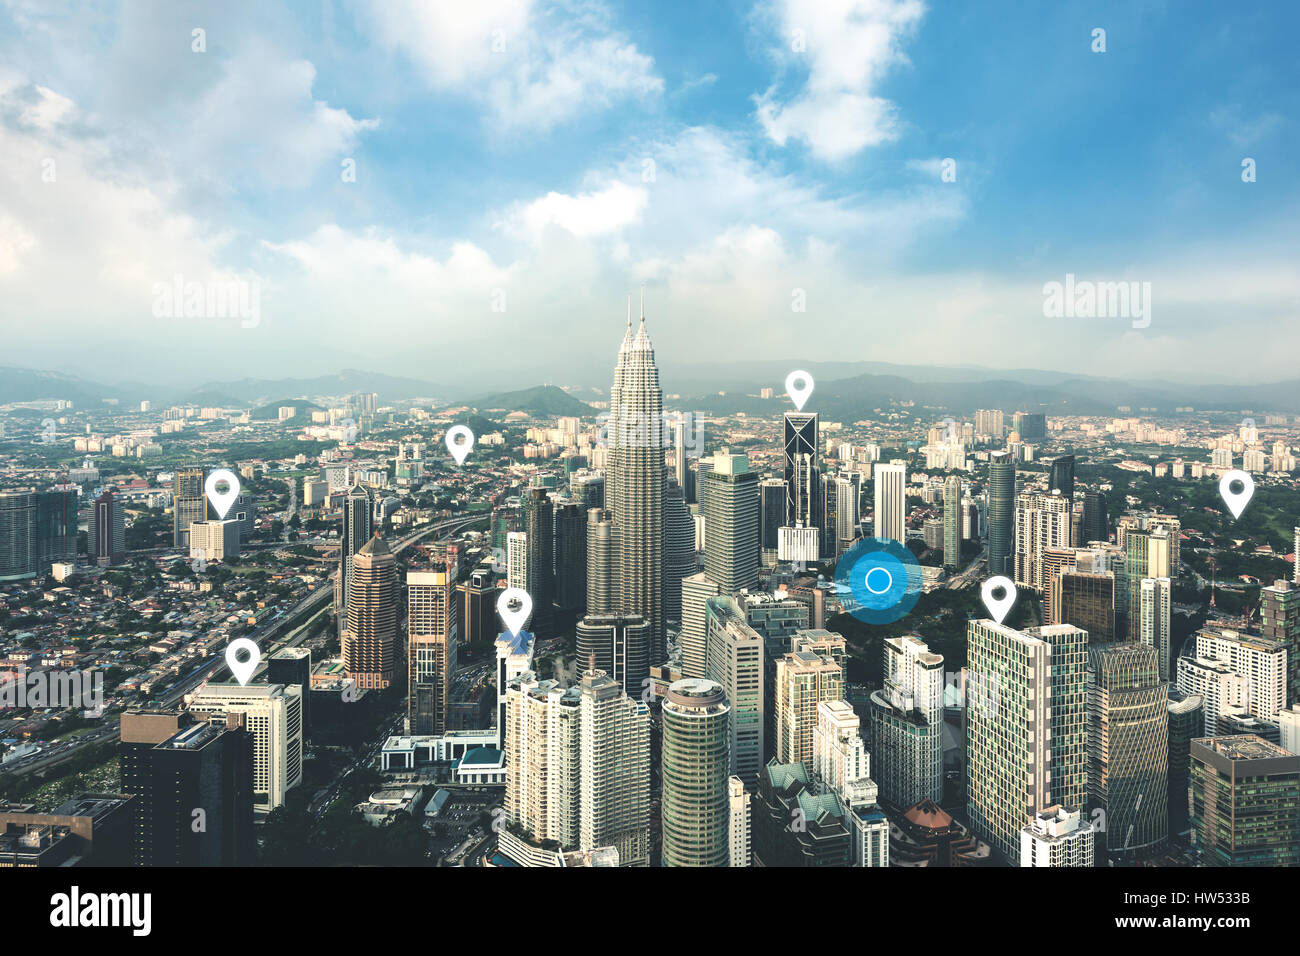 Searching location on map and pin above Kuala Lumpur city and network connection, internet of things, satellite - Stock Image